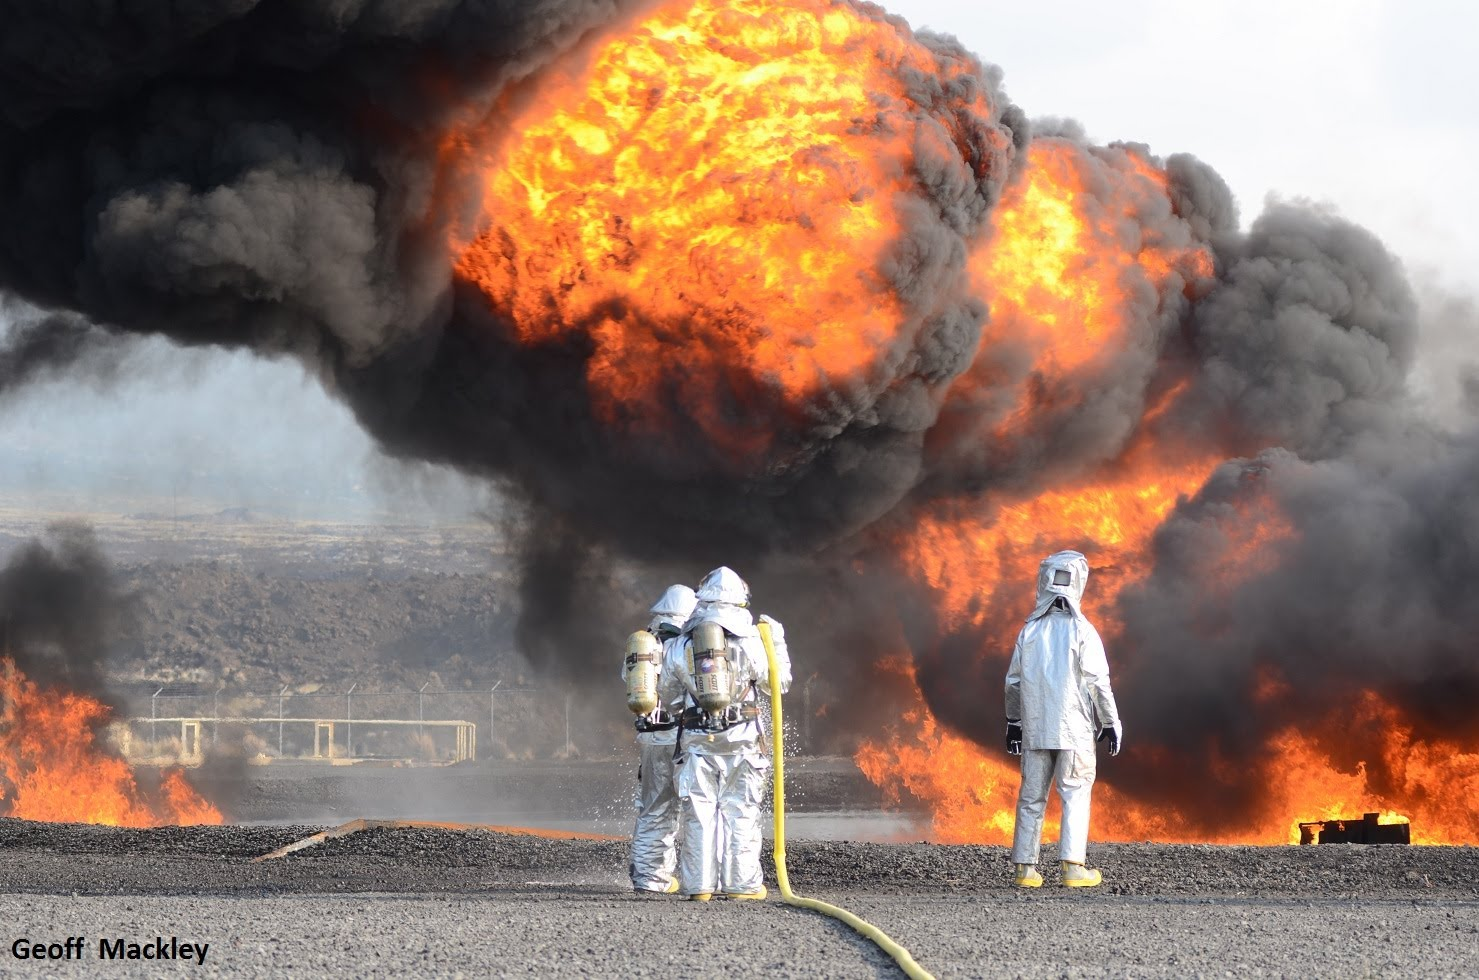 Fire training at Kona Airport, Hawaii, USA with Geoff Mackley, Credit: Geoff Mackley, YouTube